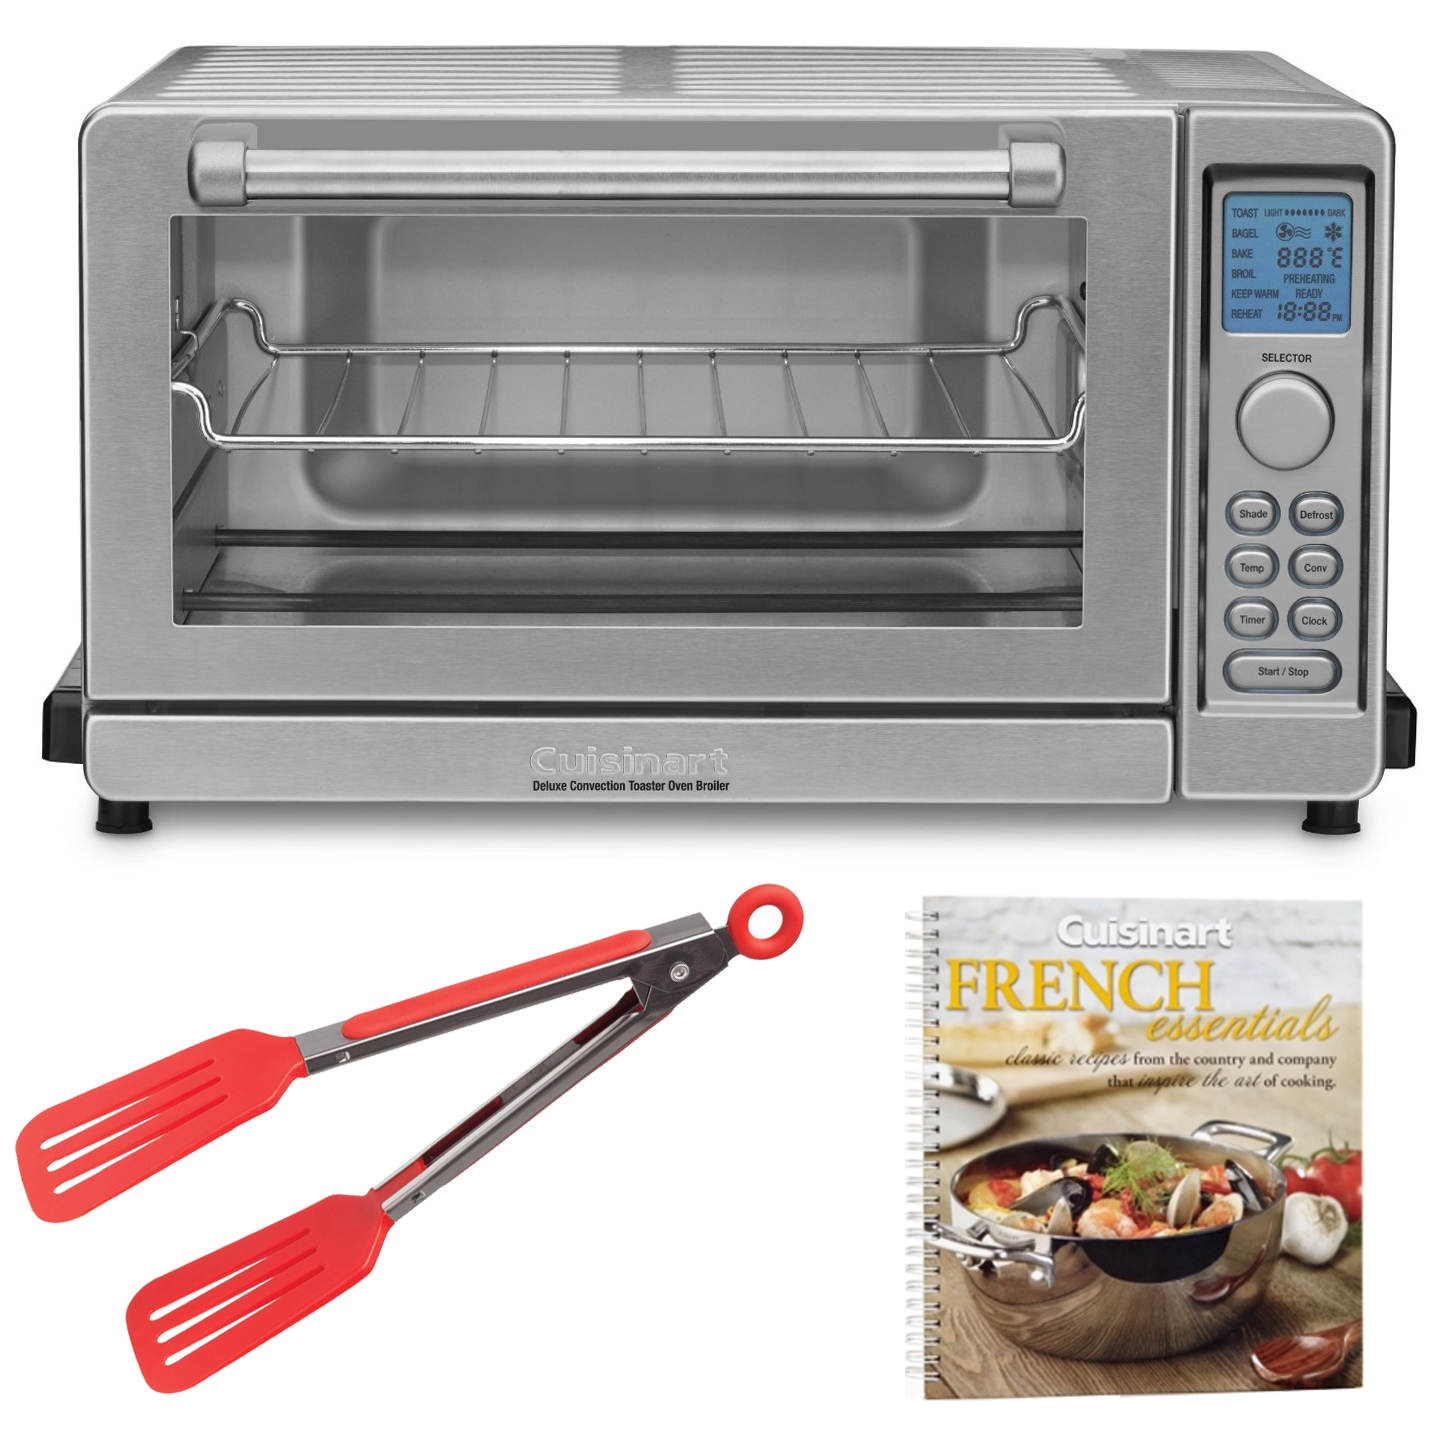 Cuisinart TOB-135 Deluxe Convection Toaster Oven Broiler + Cookbook + 8-inch Nylon Flipper Tongs (Refurbished)